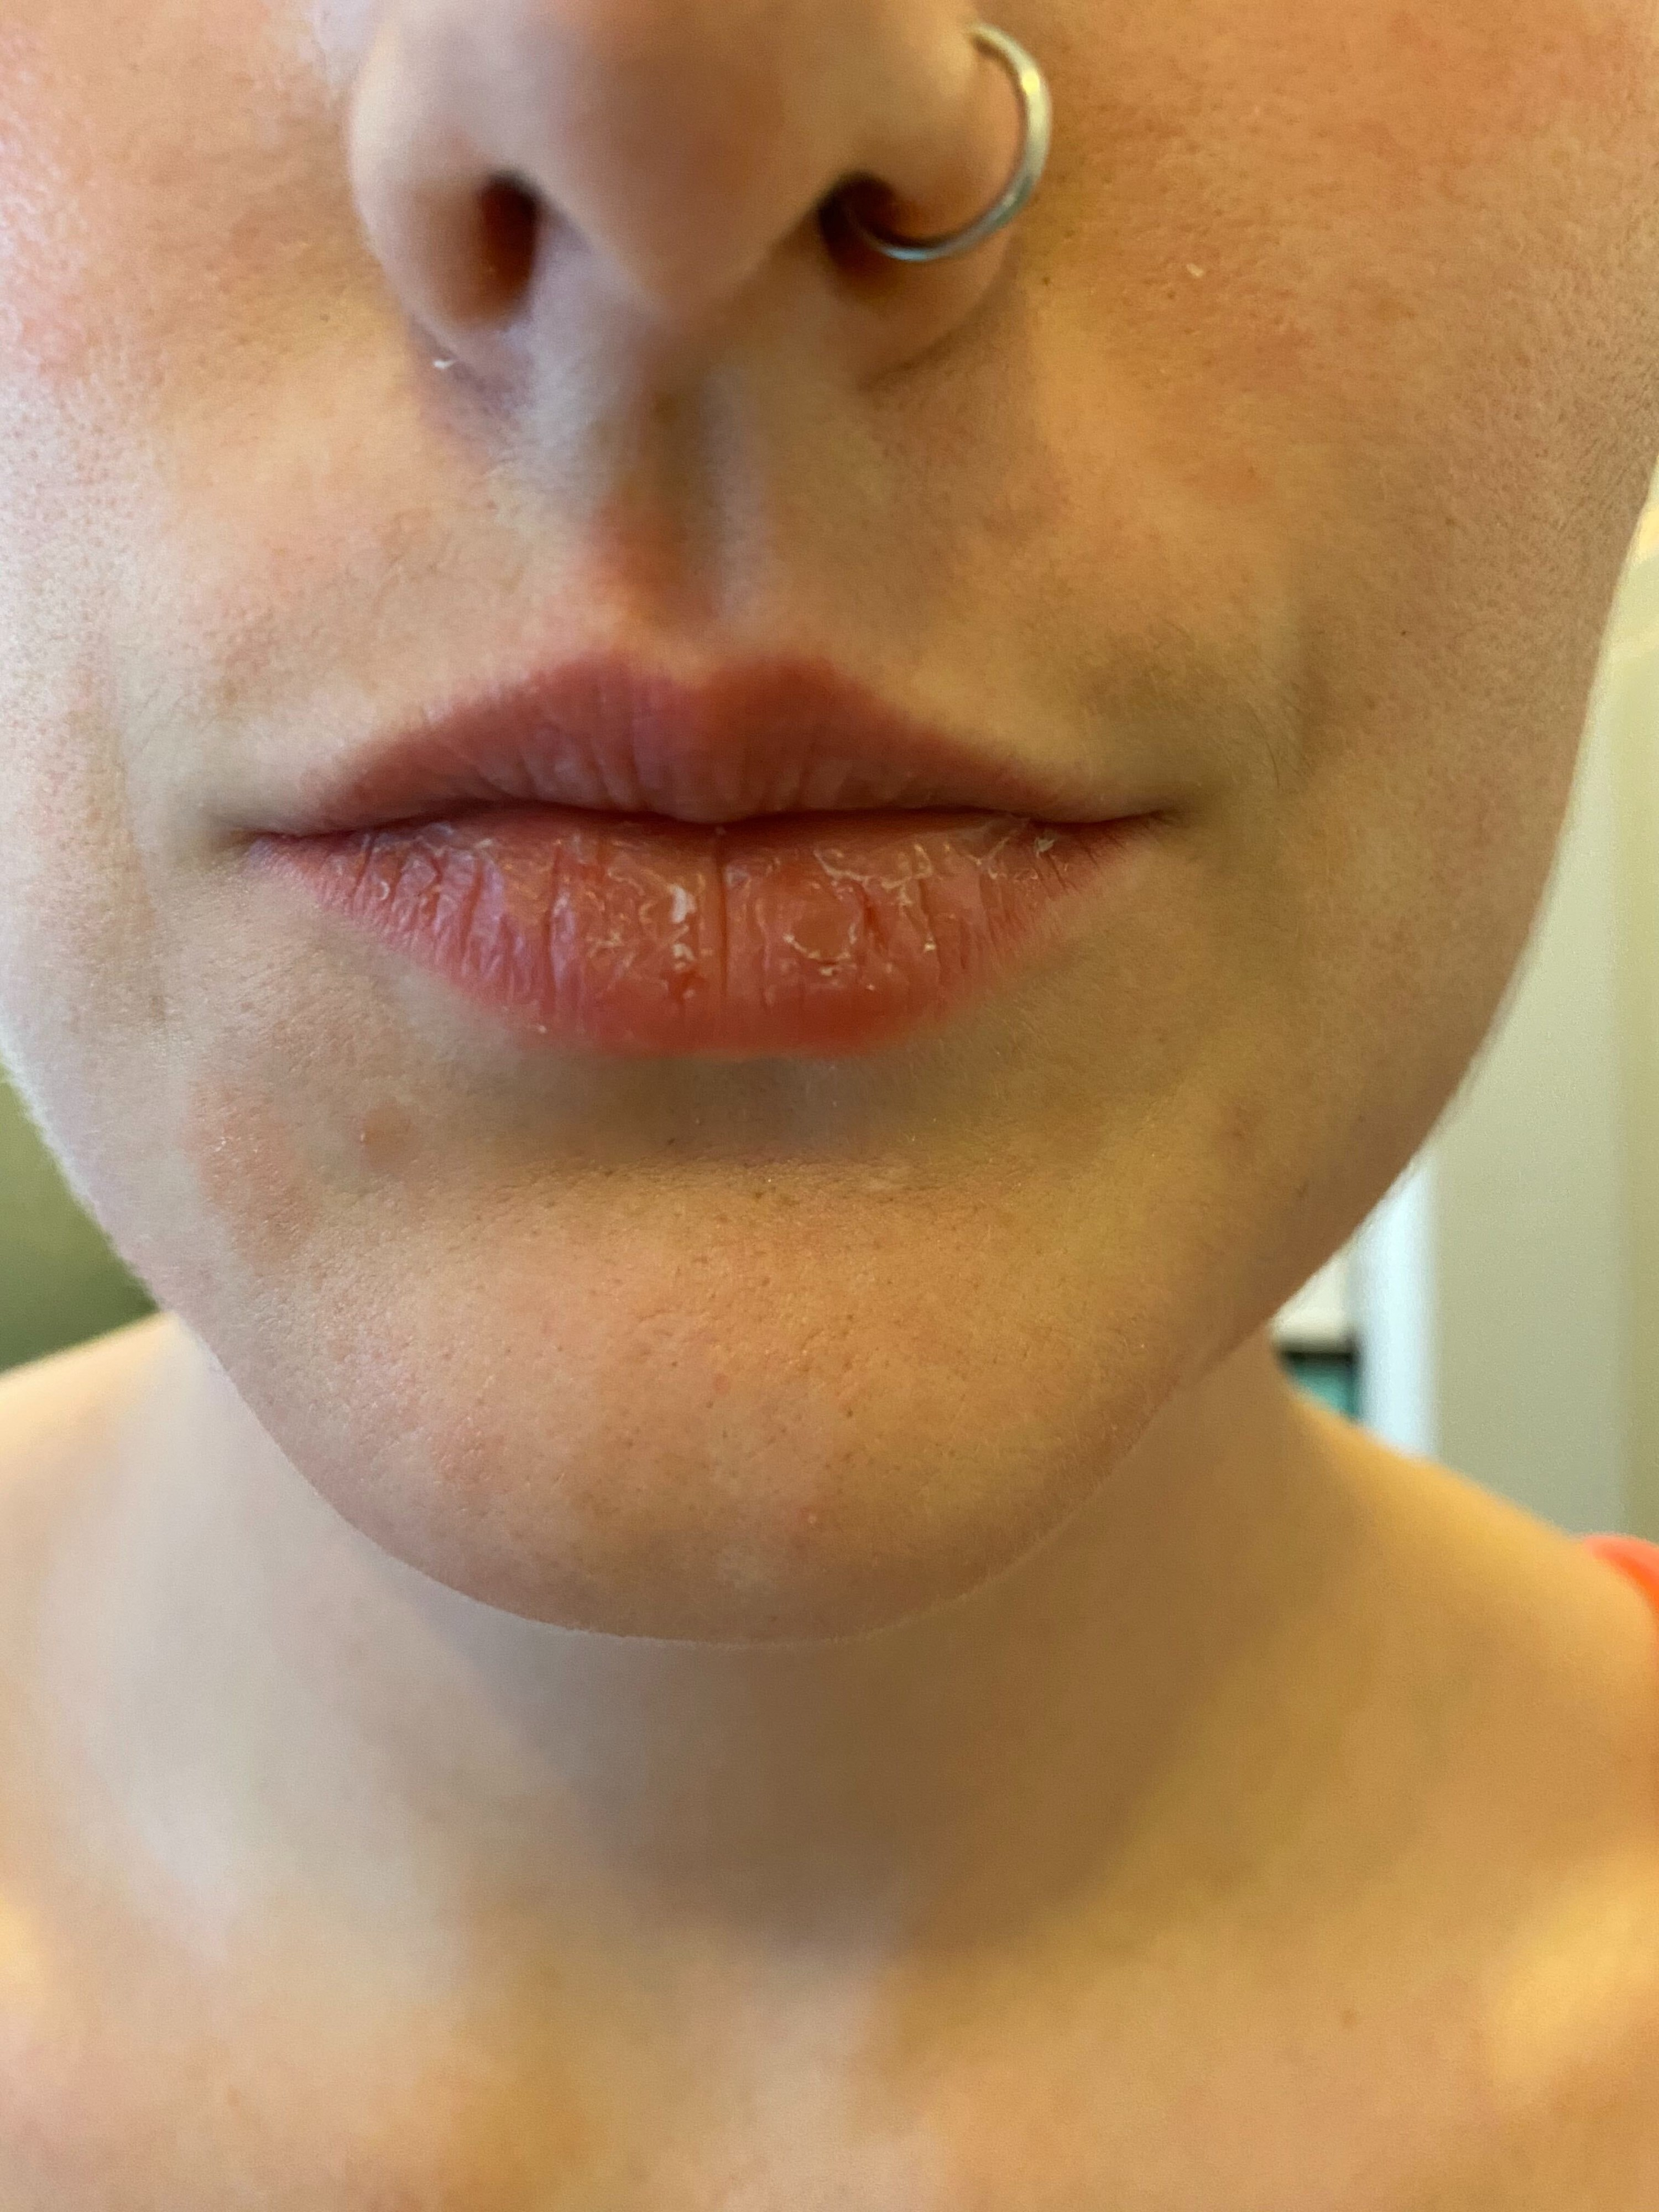 Closeup of my dry and flaky lips.